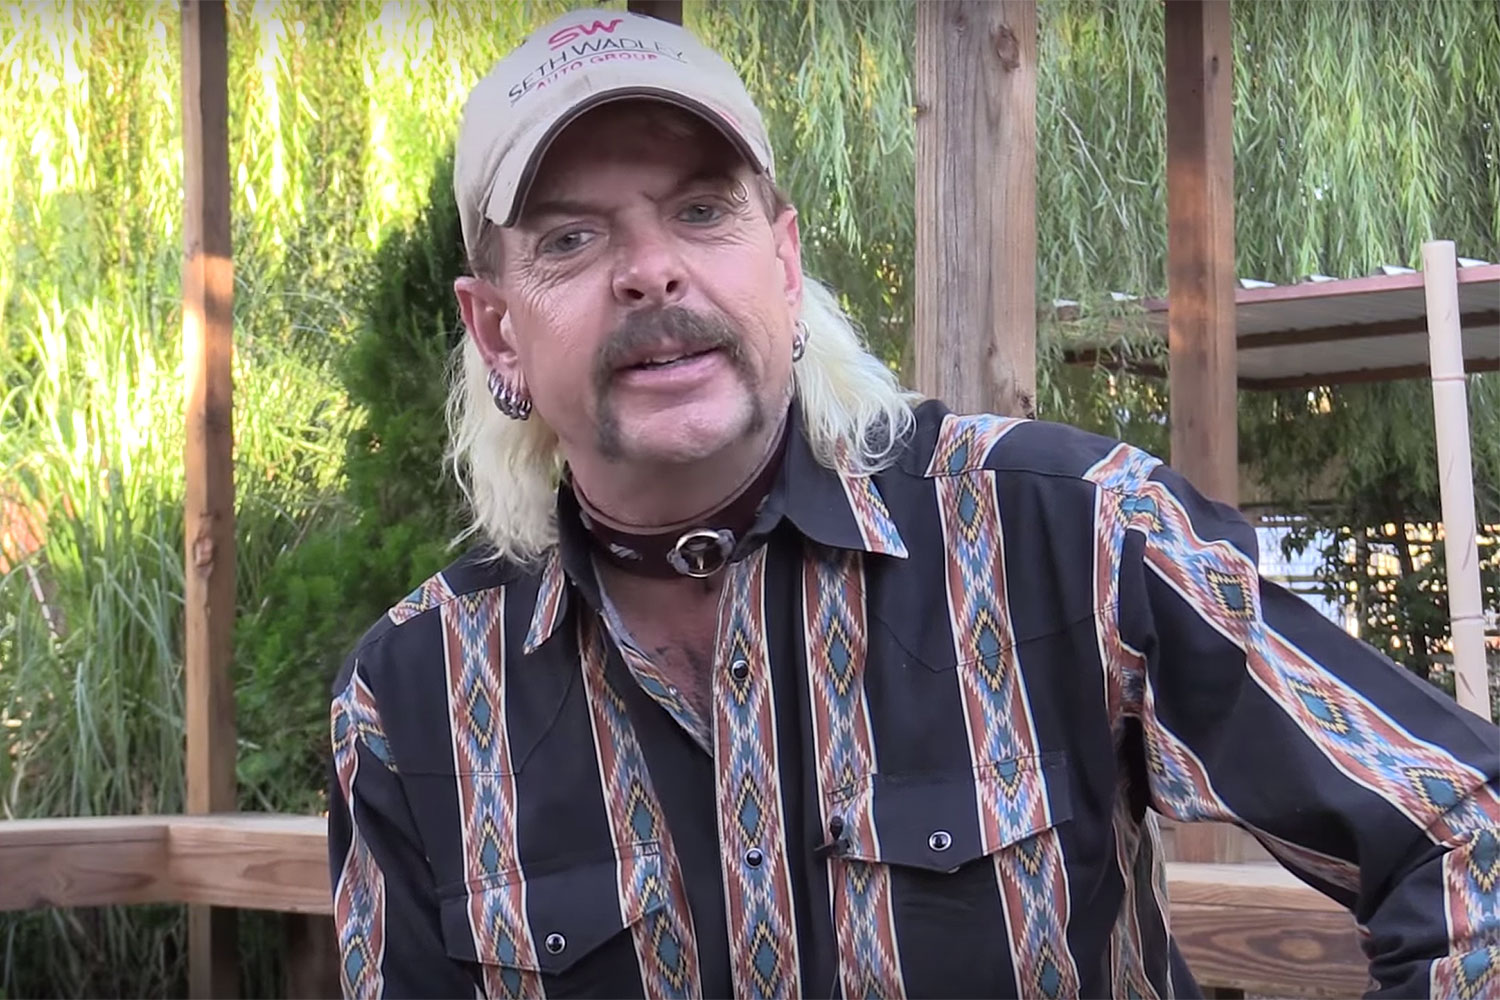 What happened to Joe Exotic and is the Tiger King's zoo still open?